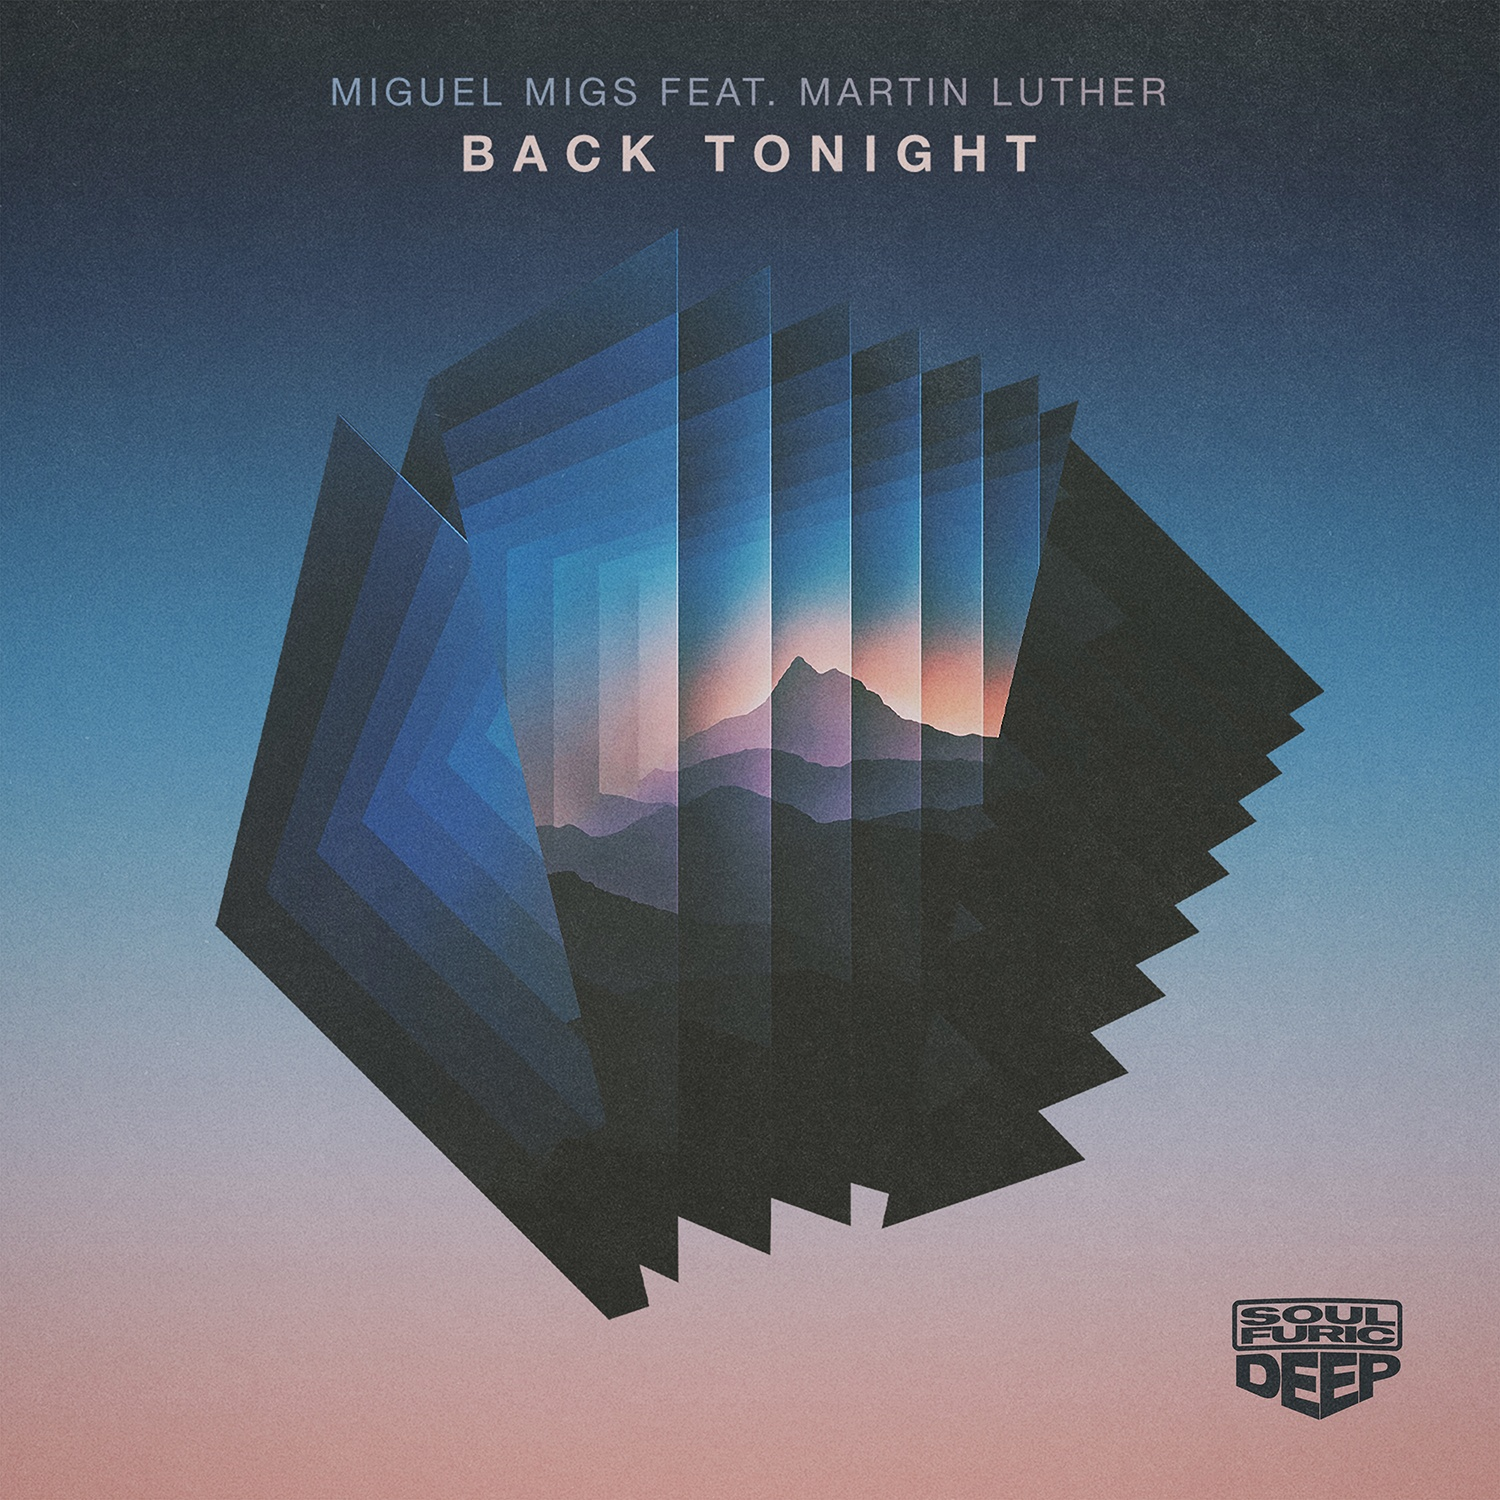 Back Tonight - Miguel Migs, Martin Luther (Soulfuric Deep)